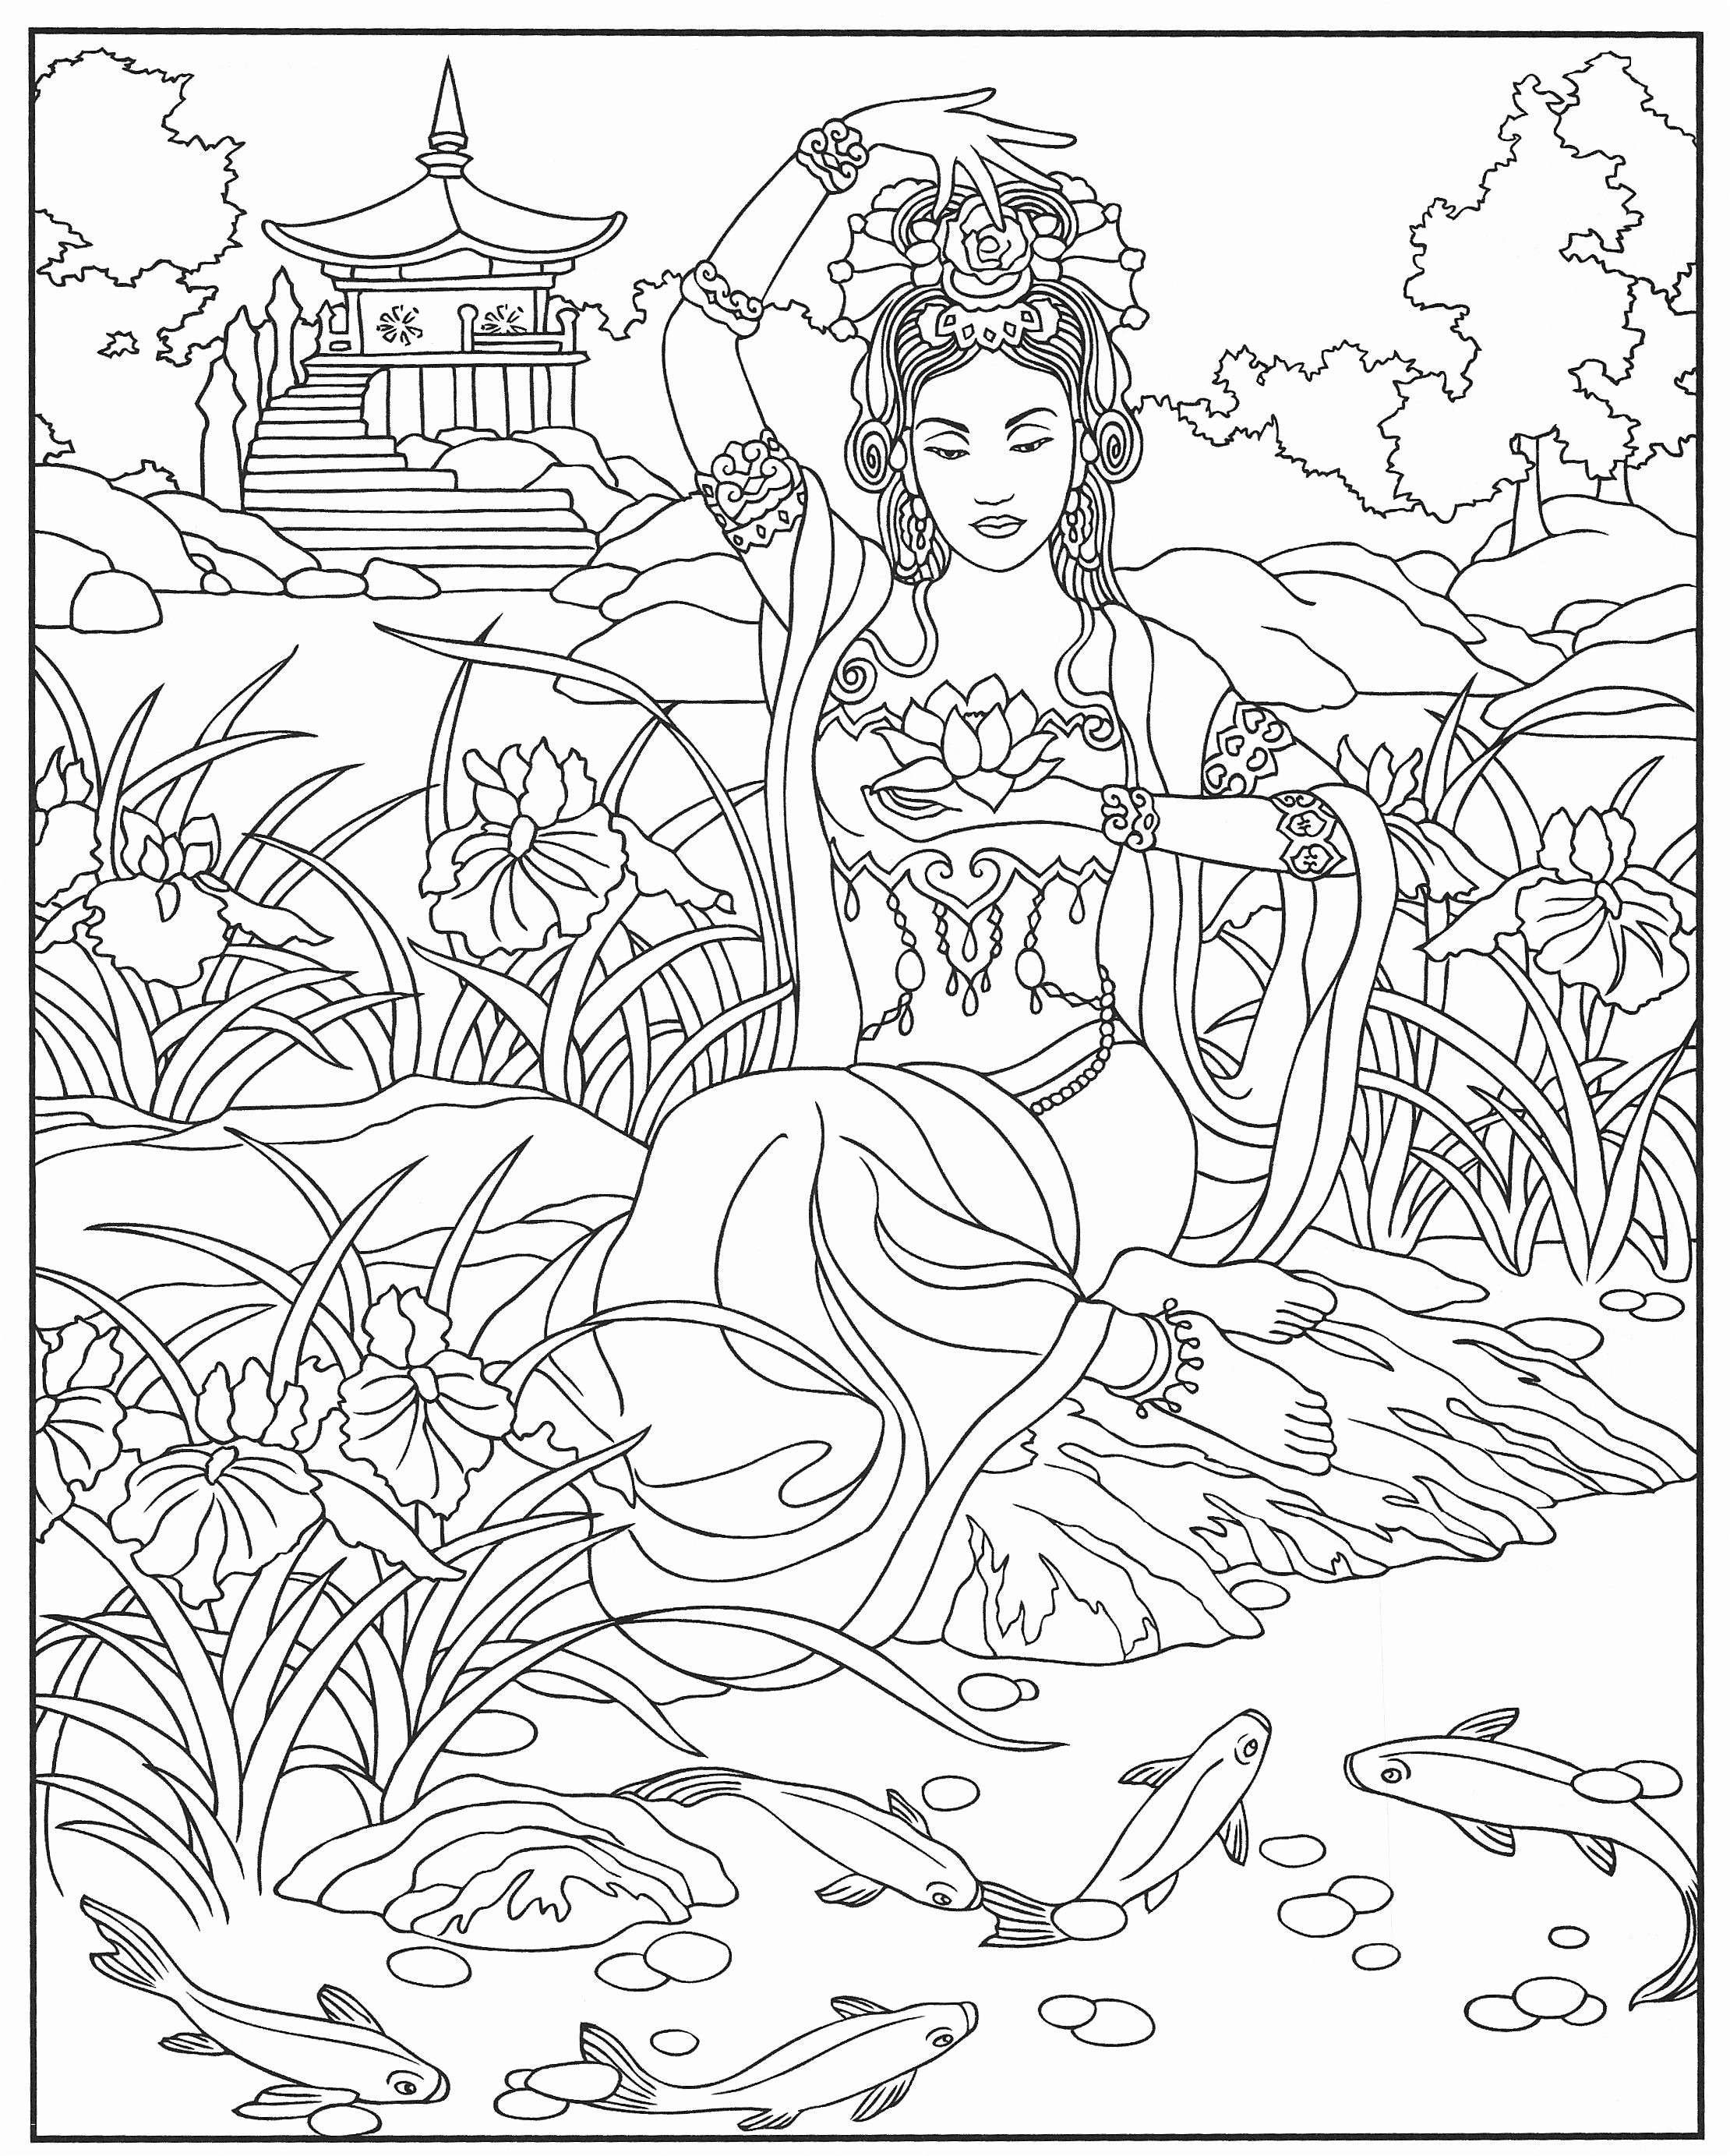 american girl coloring pages Collection-American Girl Doll Coloring Pages American Girl Doll Coloring Download 12-t